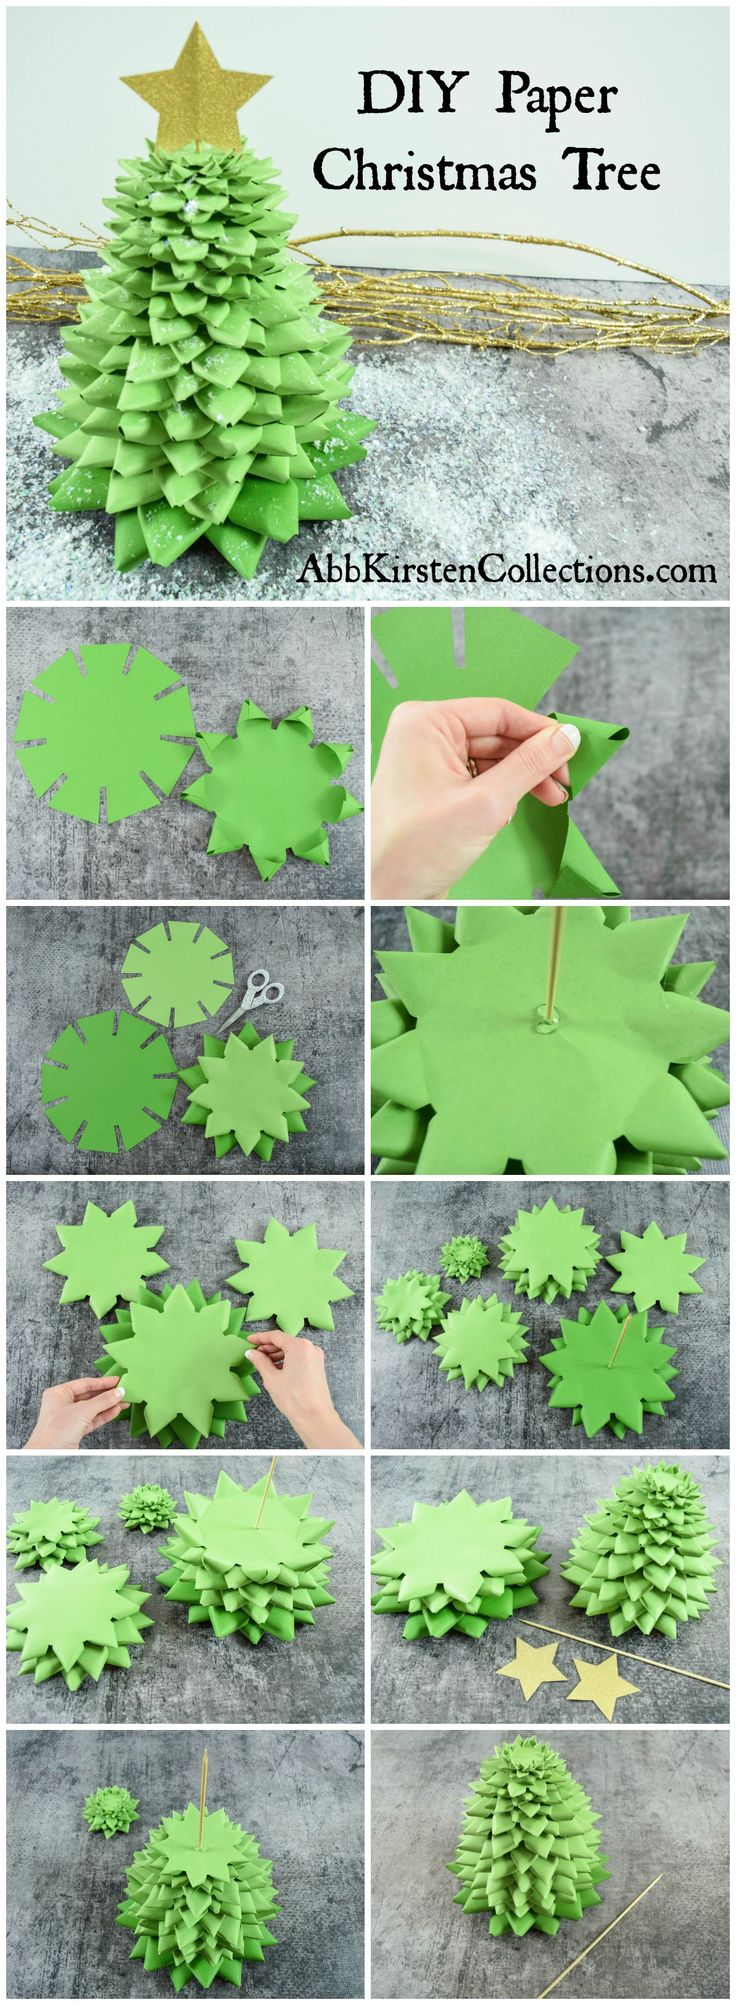 DIY step by step easy and fun Paper Christmas Tree Craft. Holiday paper crafts with printable template, svg cut file and full tutorial.